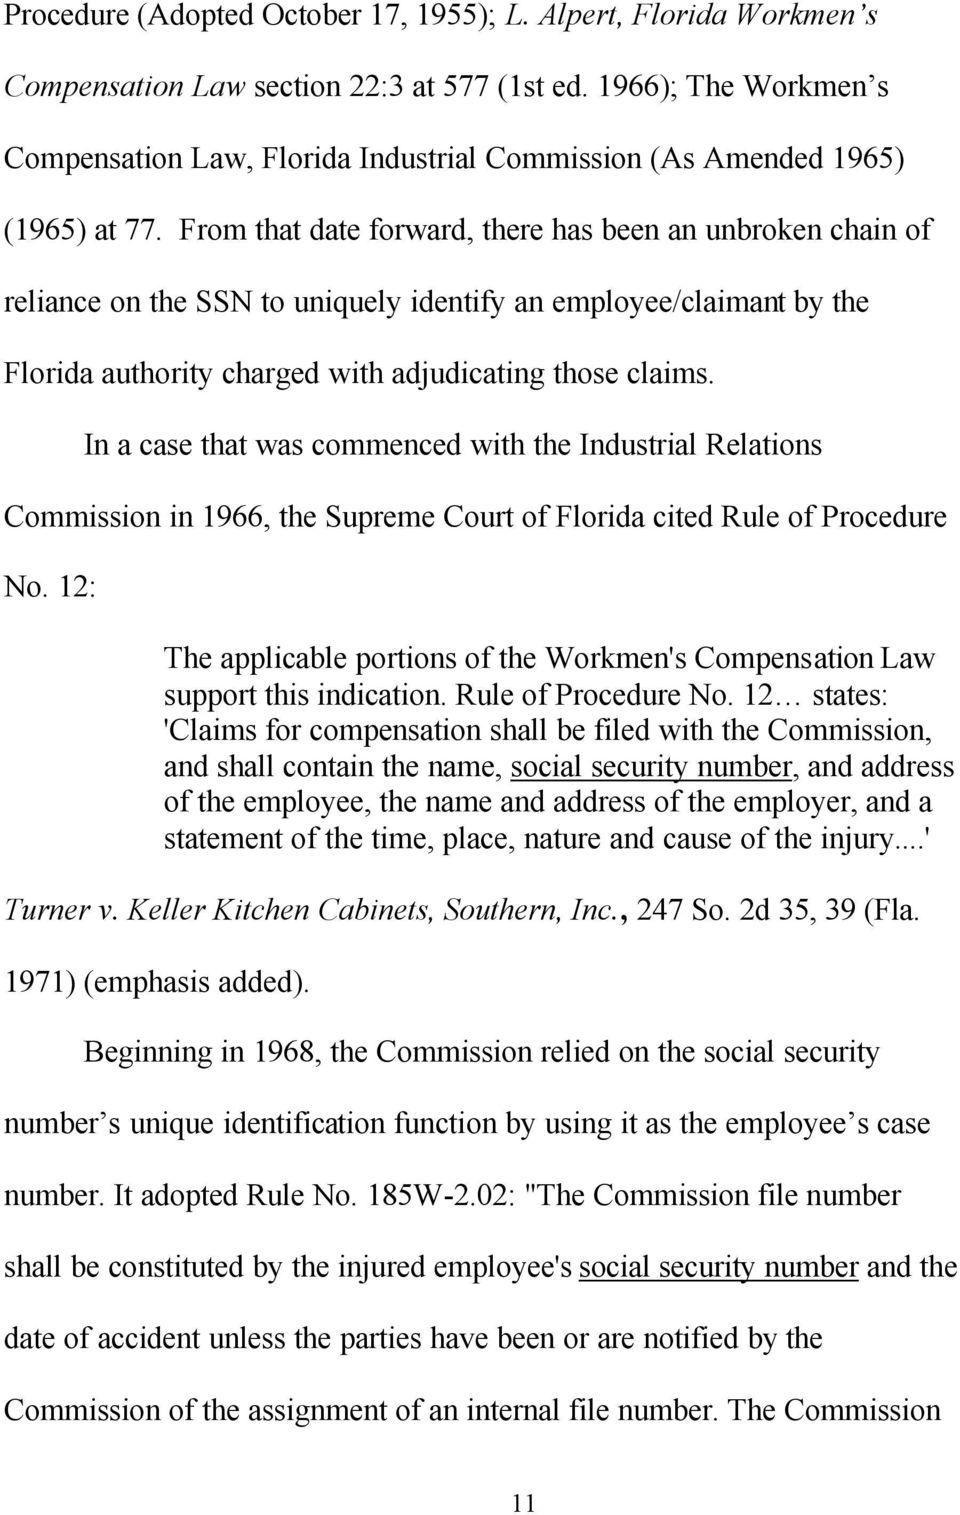 From that date forward, there has been an unbroken chain of reliance on the SSN to uniquely identify an employee/claimant by the Florida authority charged with adjudicating those claims.